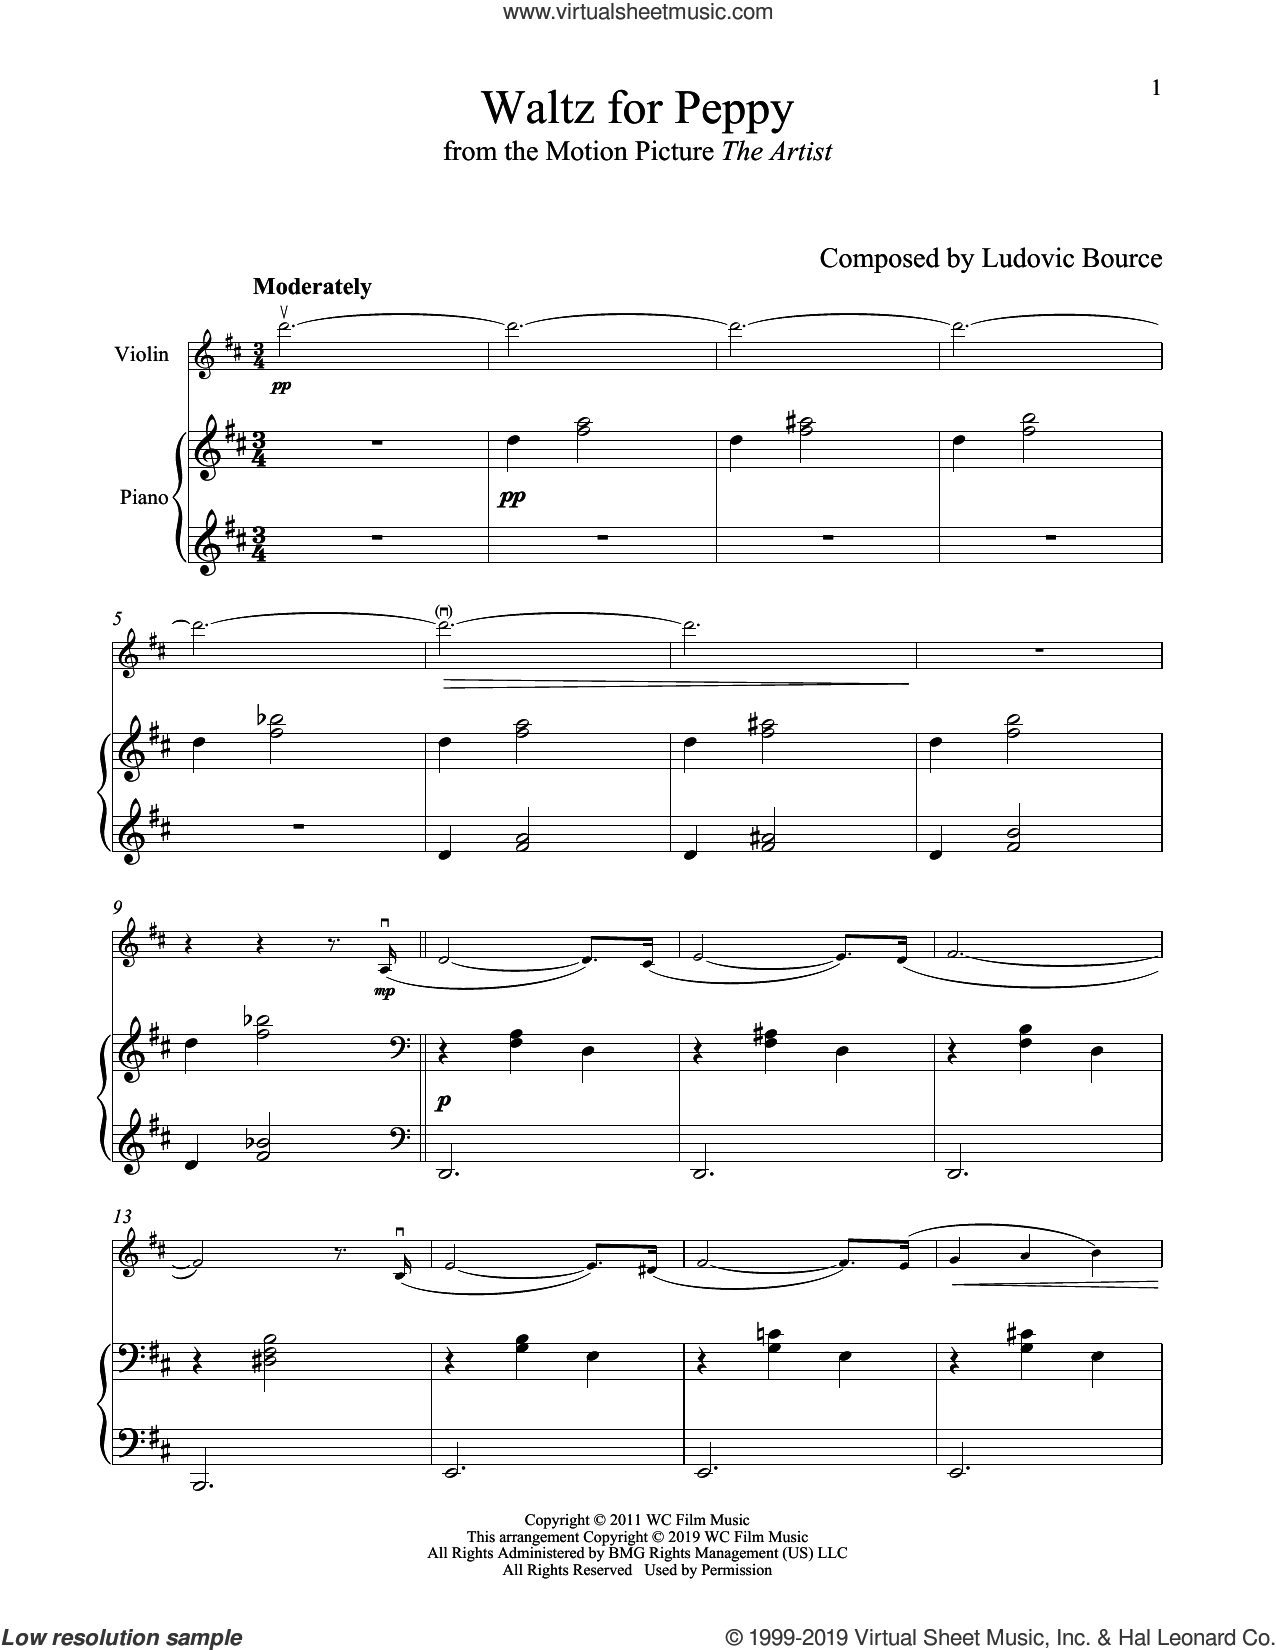 Waltz For Peppy (from The Artist) sheet music for violin and piano by Ludovic Bource, intermediate skill level